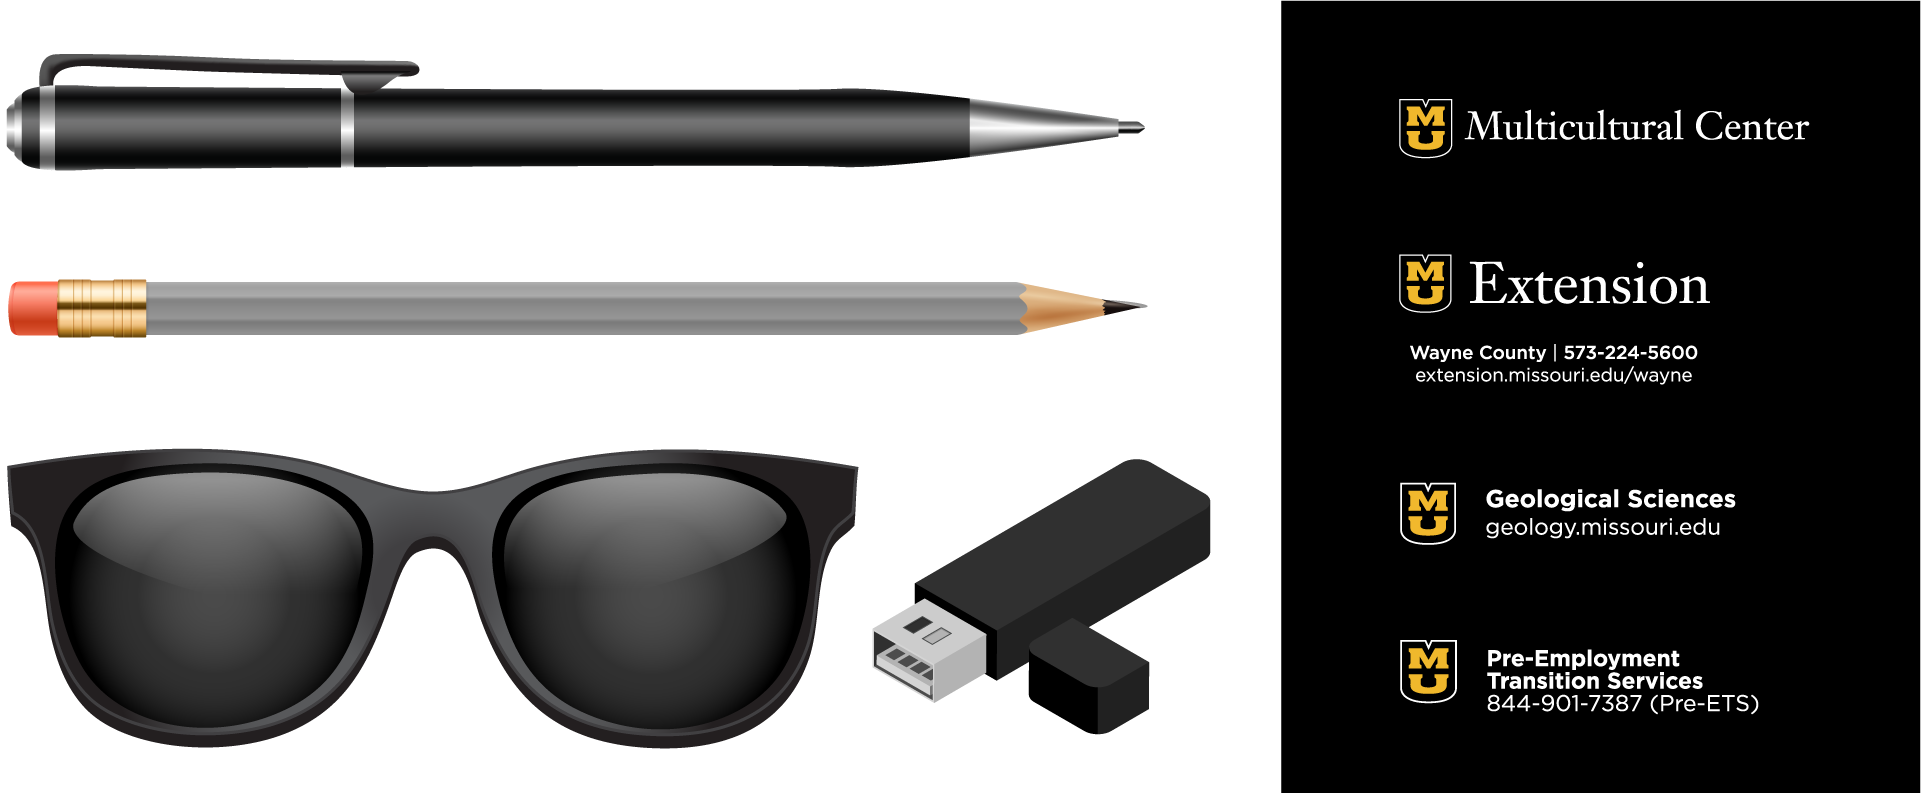 Graphic examples of small imprint items that meet campus department guidelines including pens, pencils, sunglasses and thumb drives.